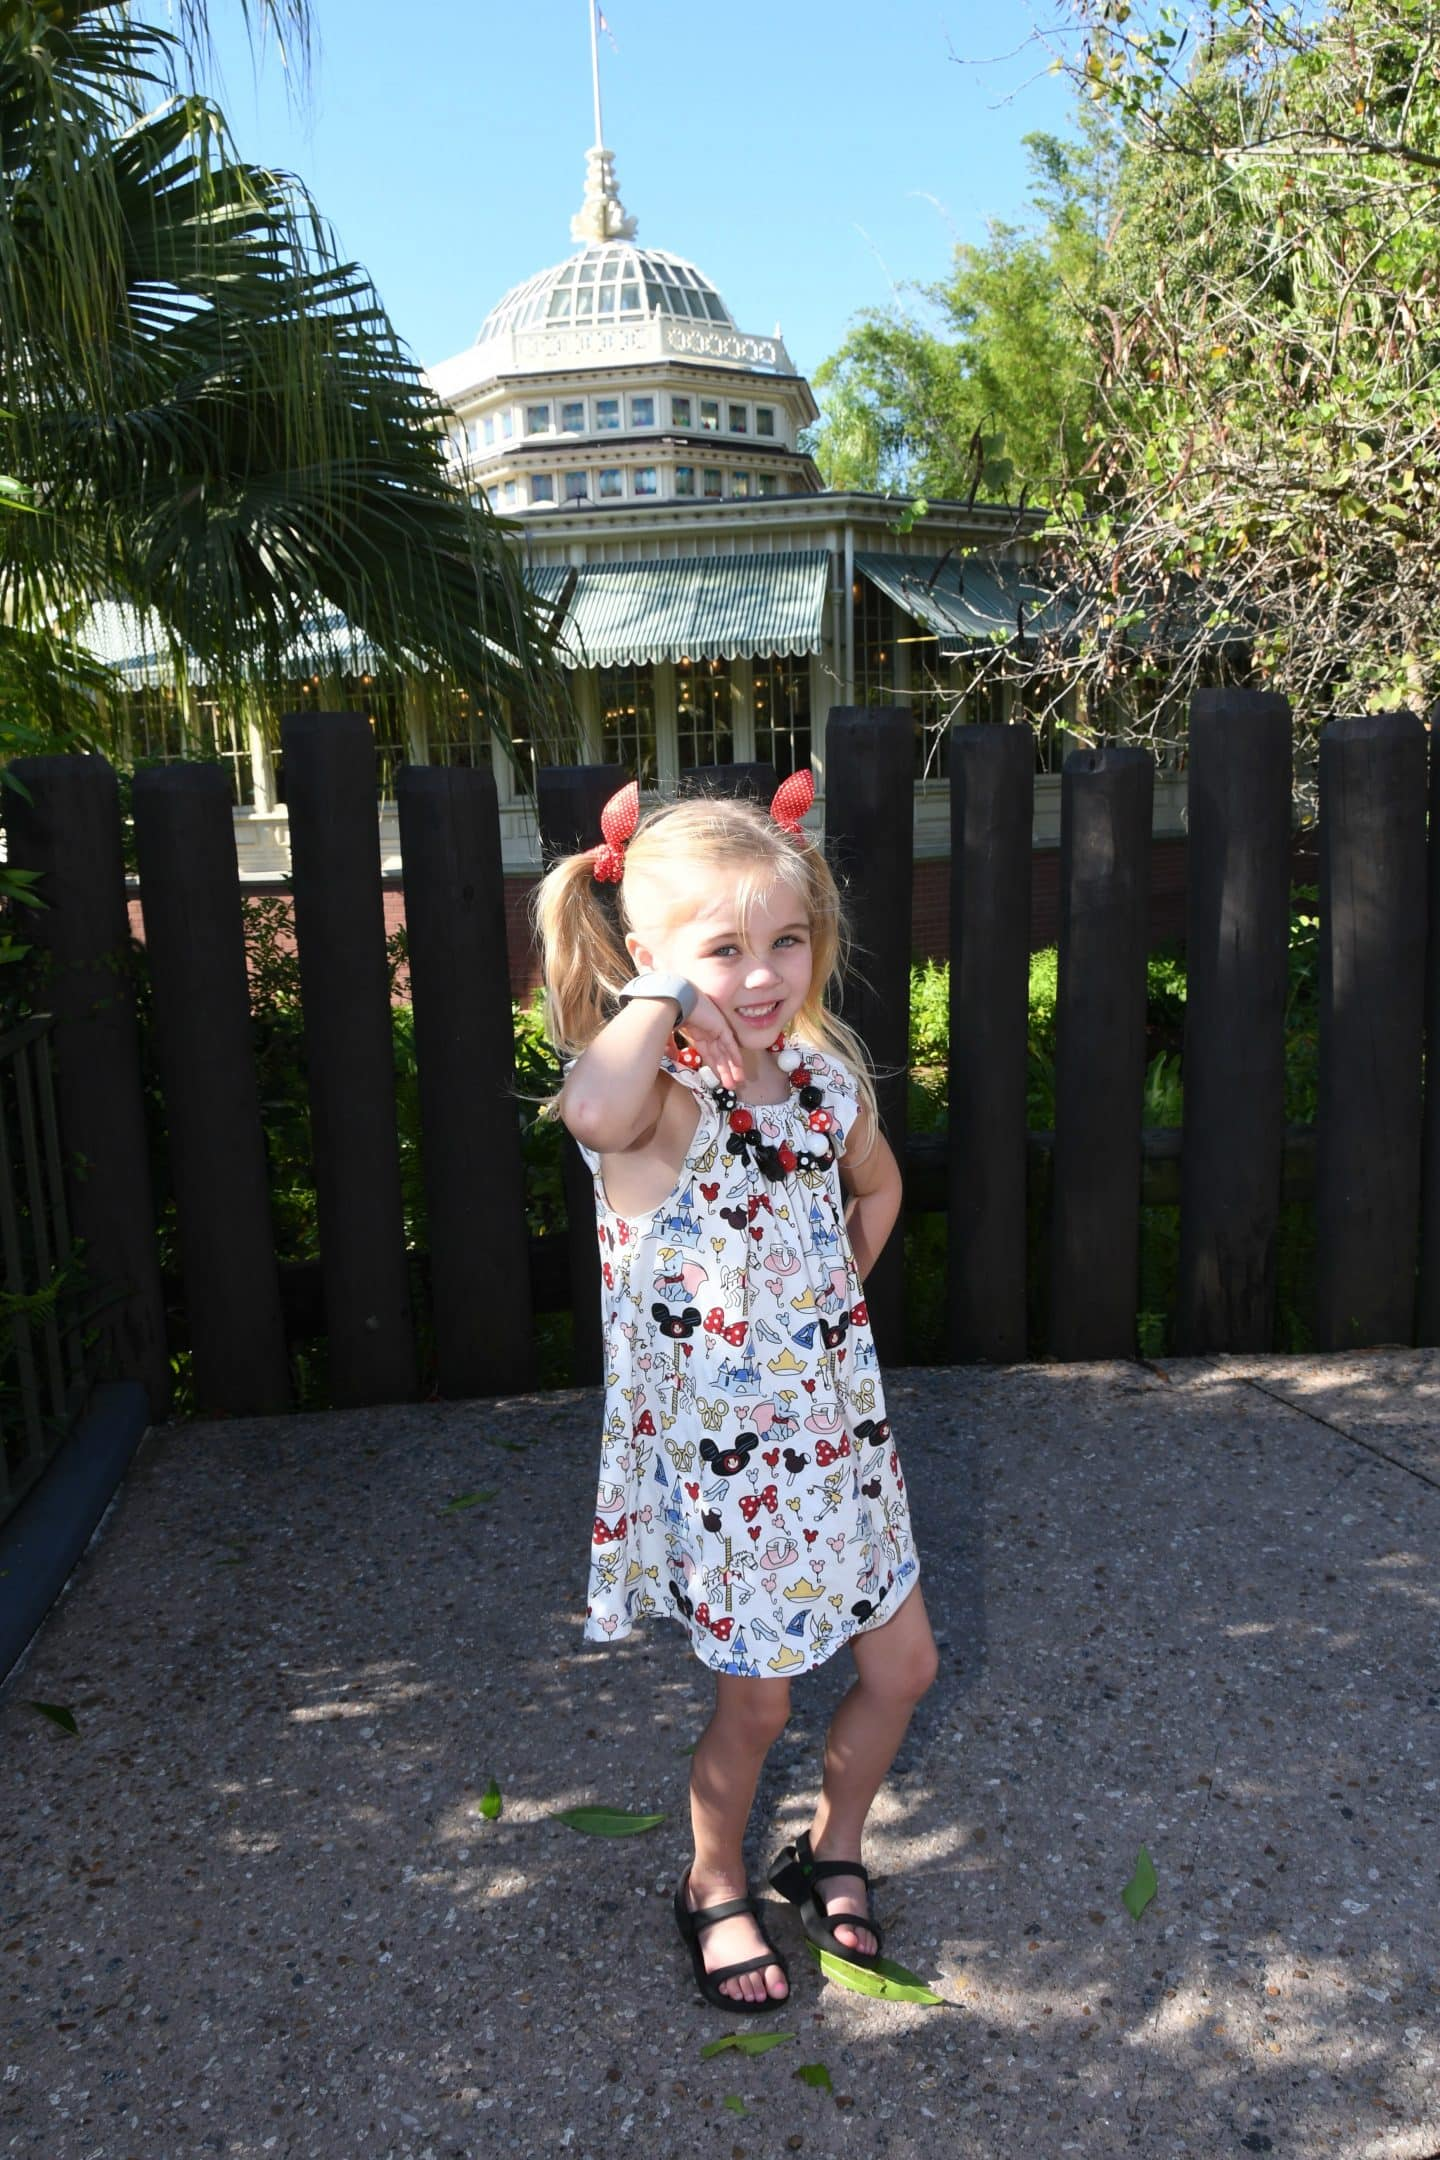 photo pass at Adventureland in magic kingdom